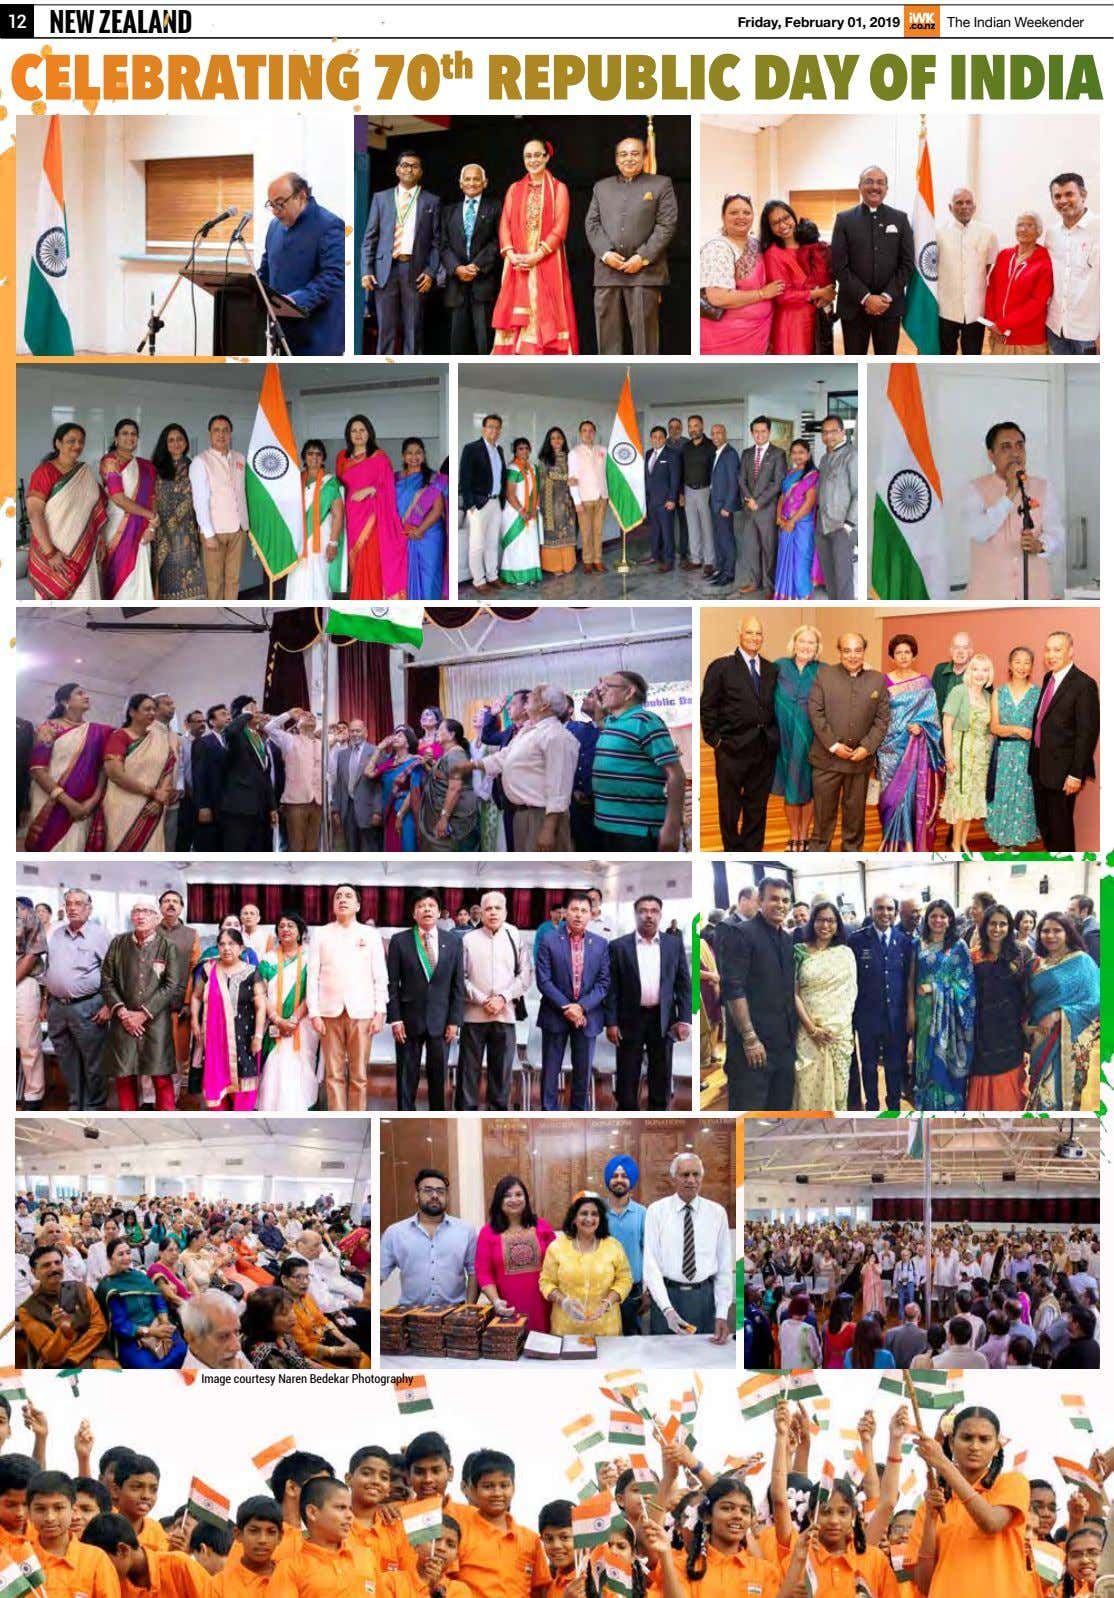 12 NEW ZEALAND Friday, February 01, 2019 The Indian Weekender CELEBRATING 70 th REPUBLIC DAY